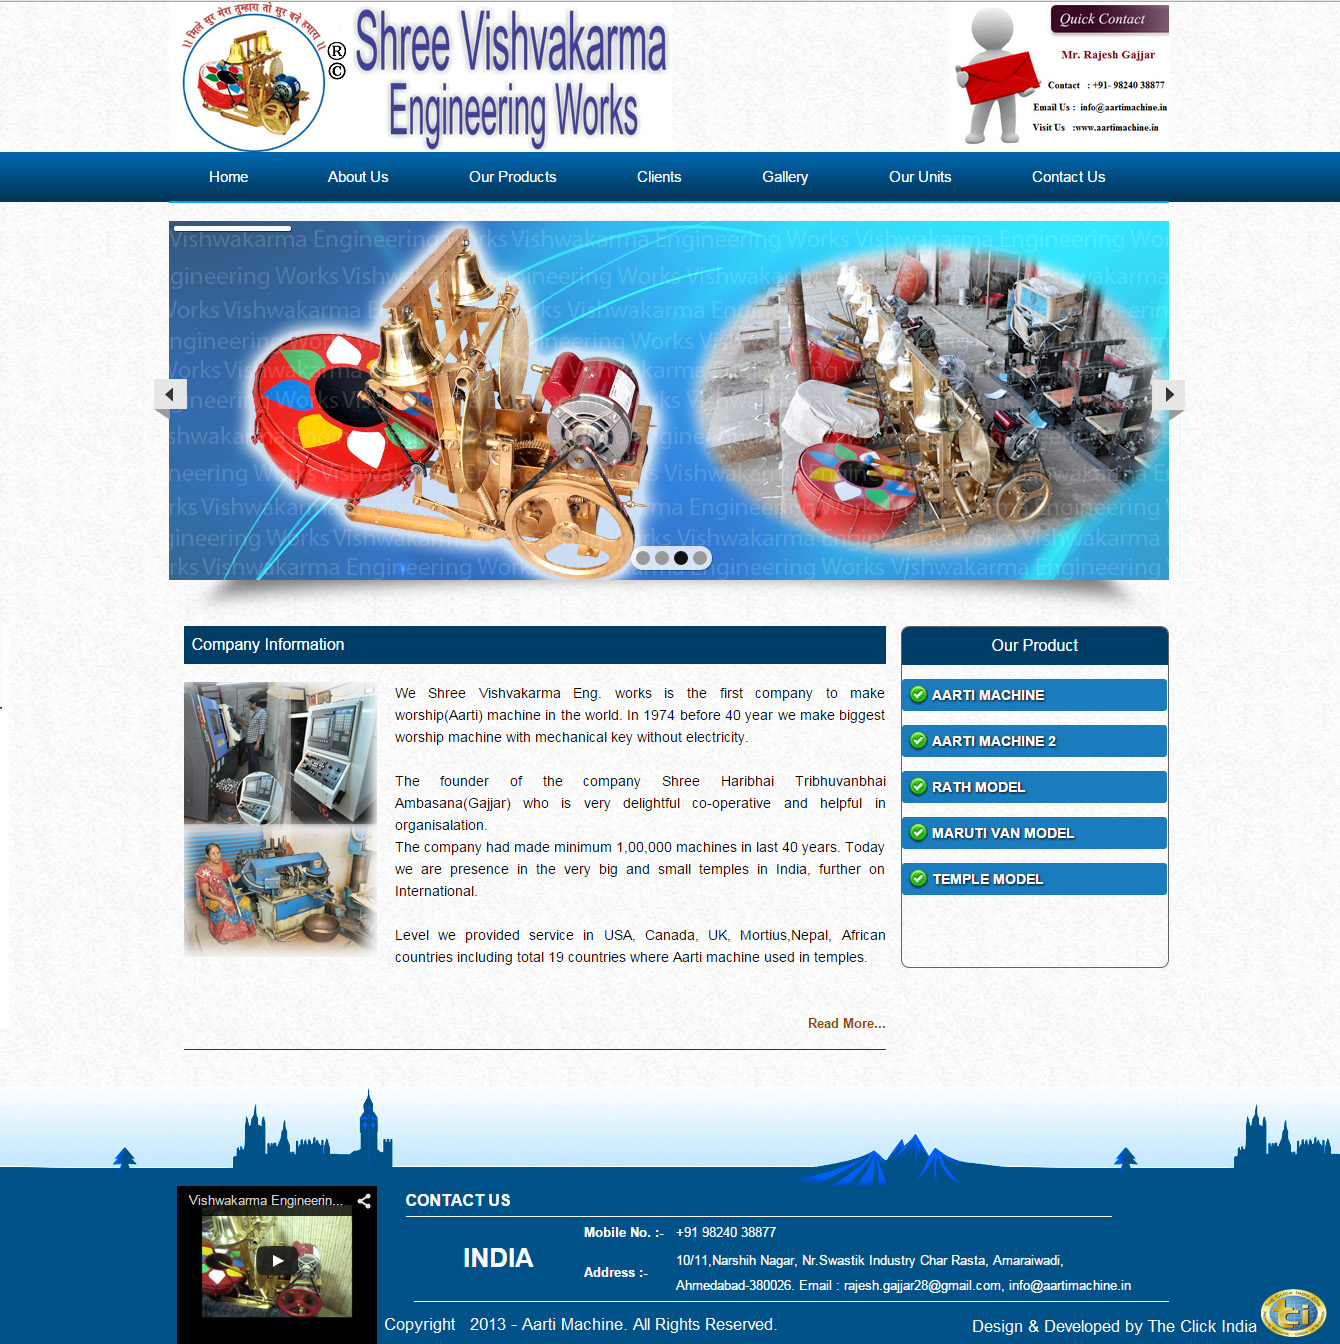 Shree Vishvakarma Eng. works